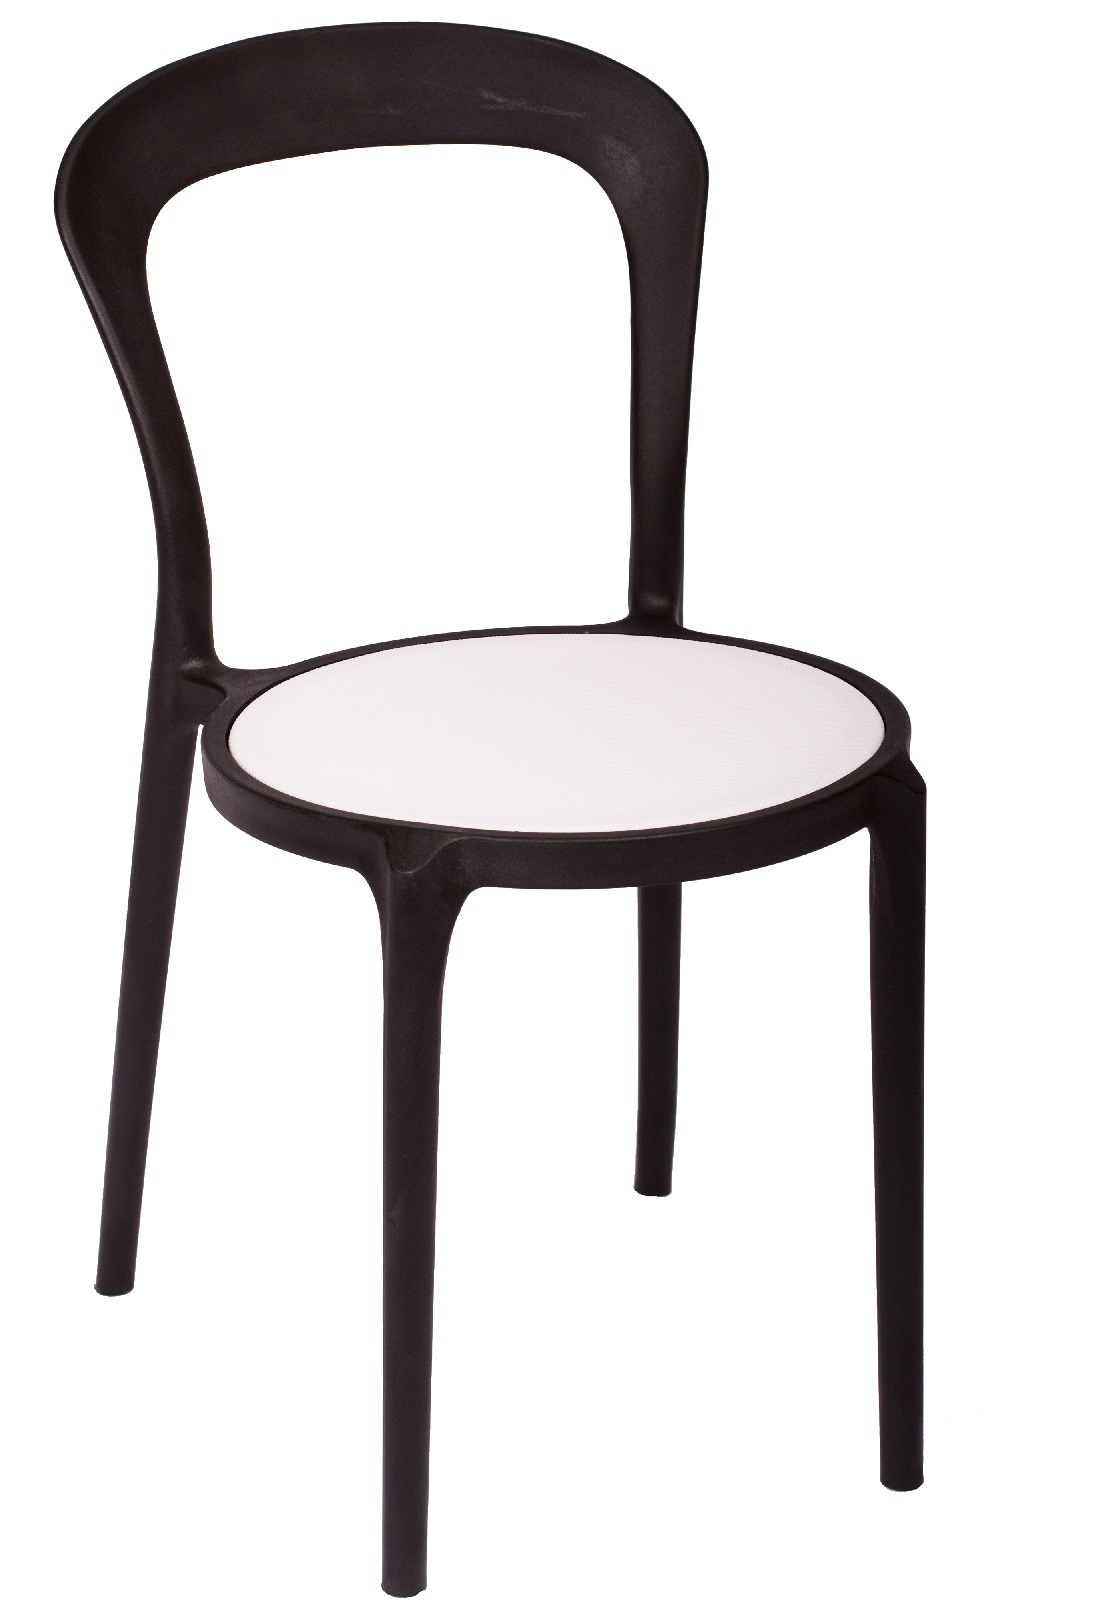 BFM Malibu Outdoor Restaurant Chair- Blackw/ Textilene White Sea